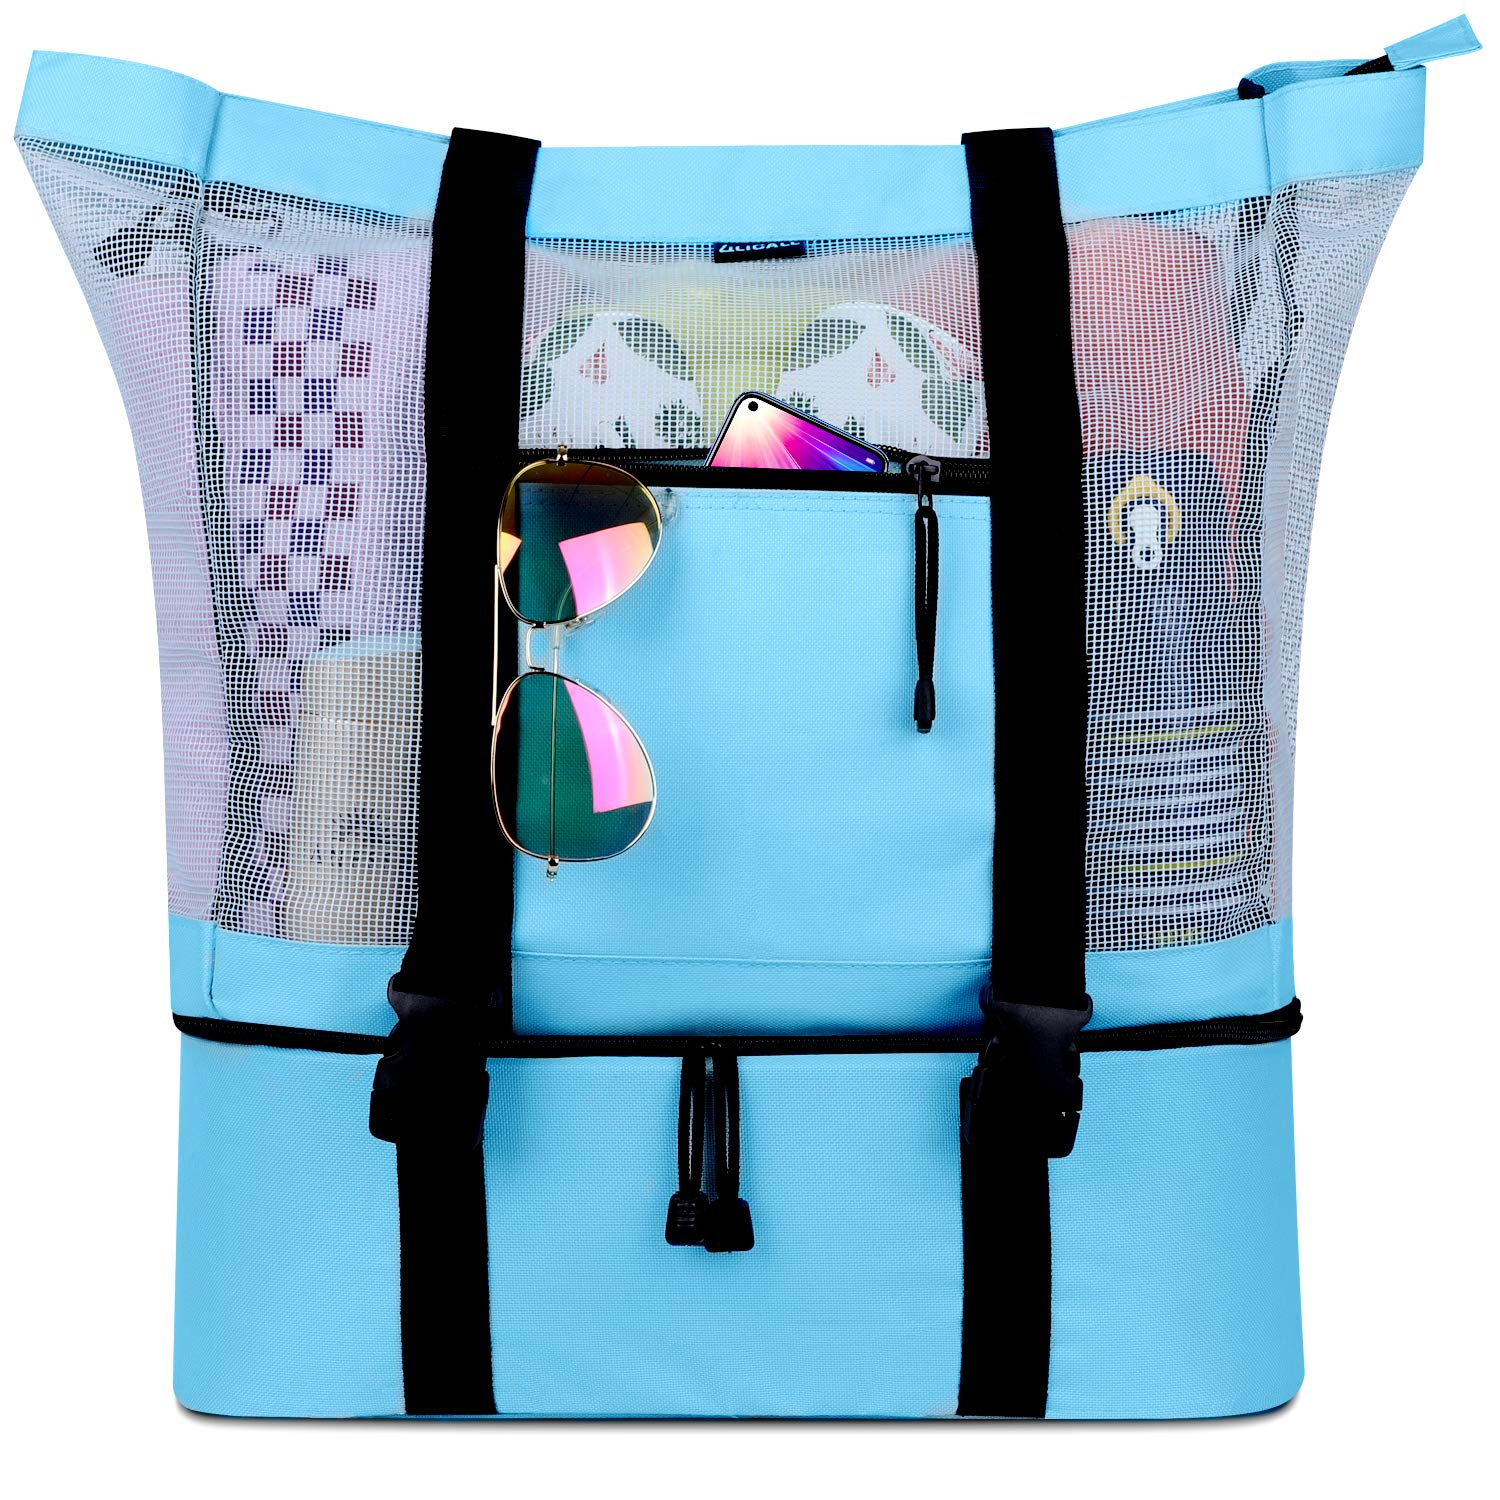 LILICALL Mesh Beach Tote Bag with Detachable Beach Cooler - MAX Capacity 34L 150lbs Ultra Durable for Women